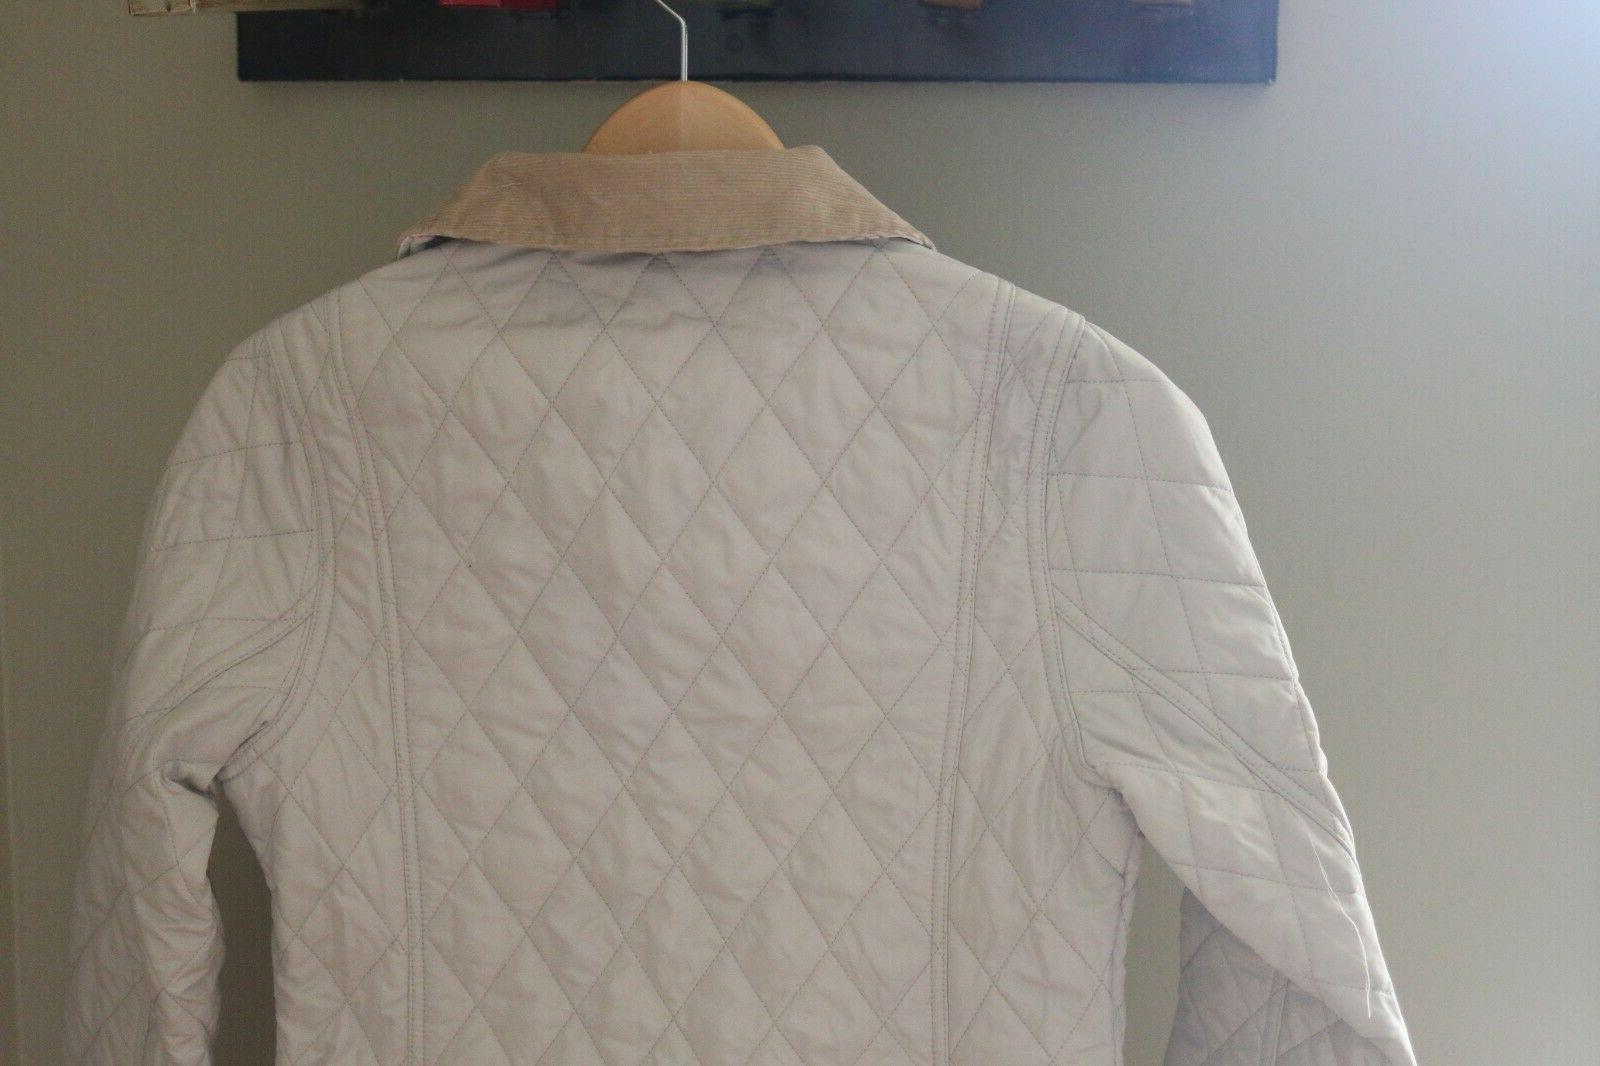 New Barbour Spring Quilted Size US 6 Tan $229